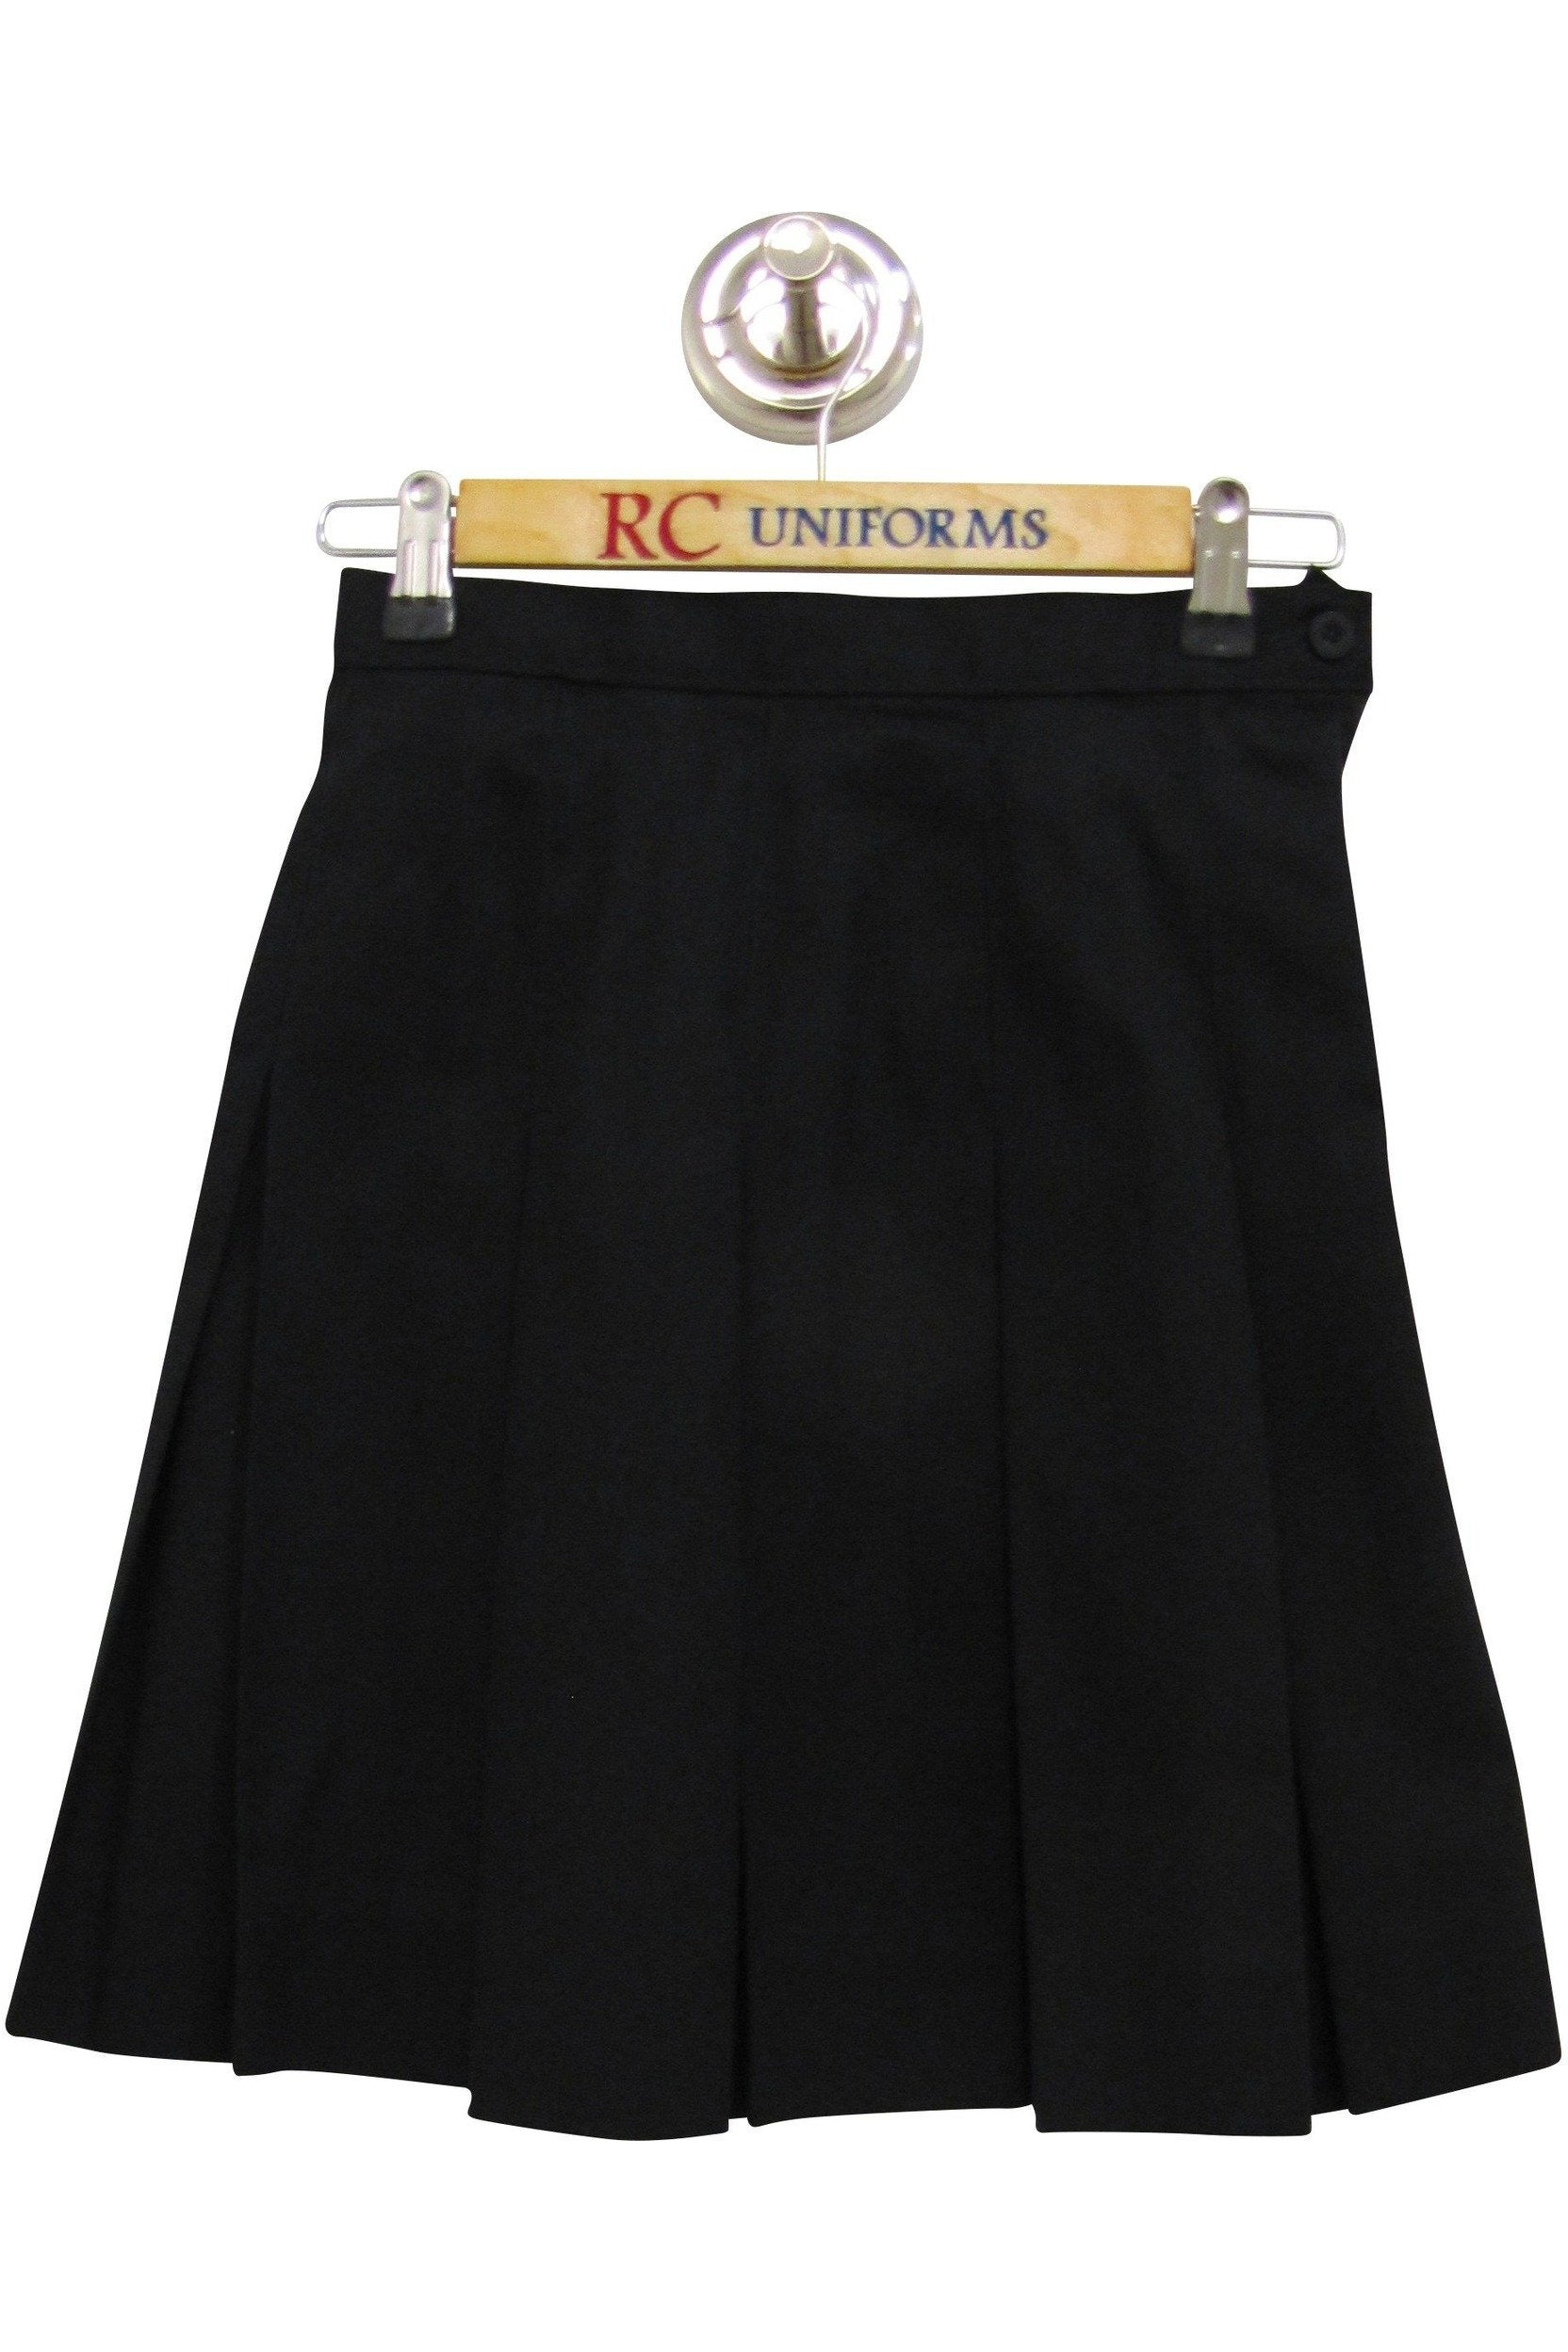 Black Box-Pleat Skirt - RC Uniforms